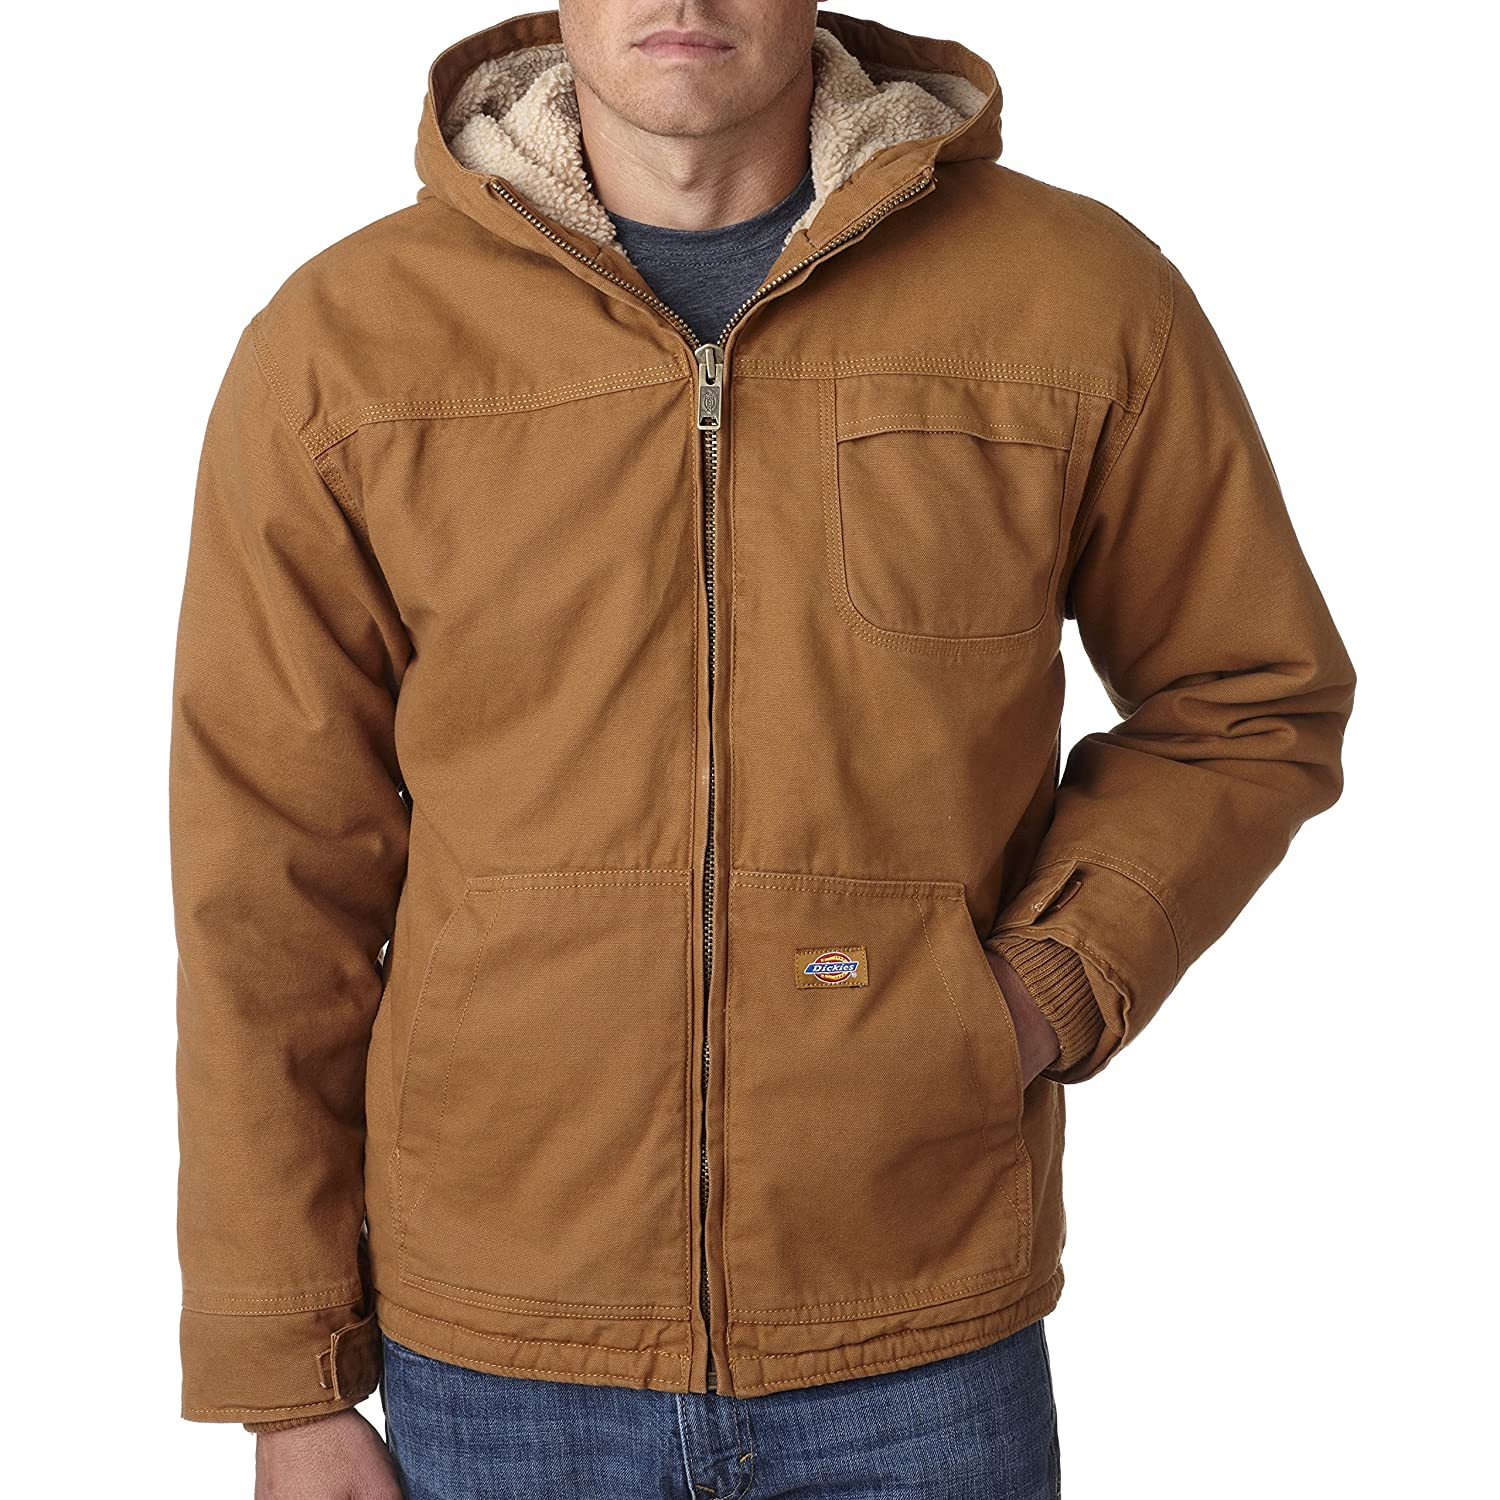 Dickies OUTERWEAR メンズ B017C7WSIA XX-Large